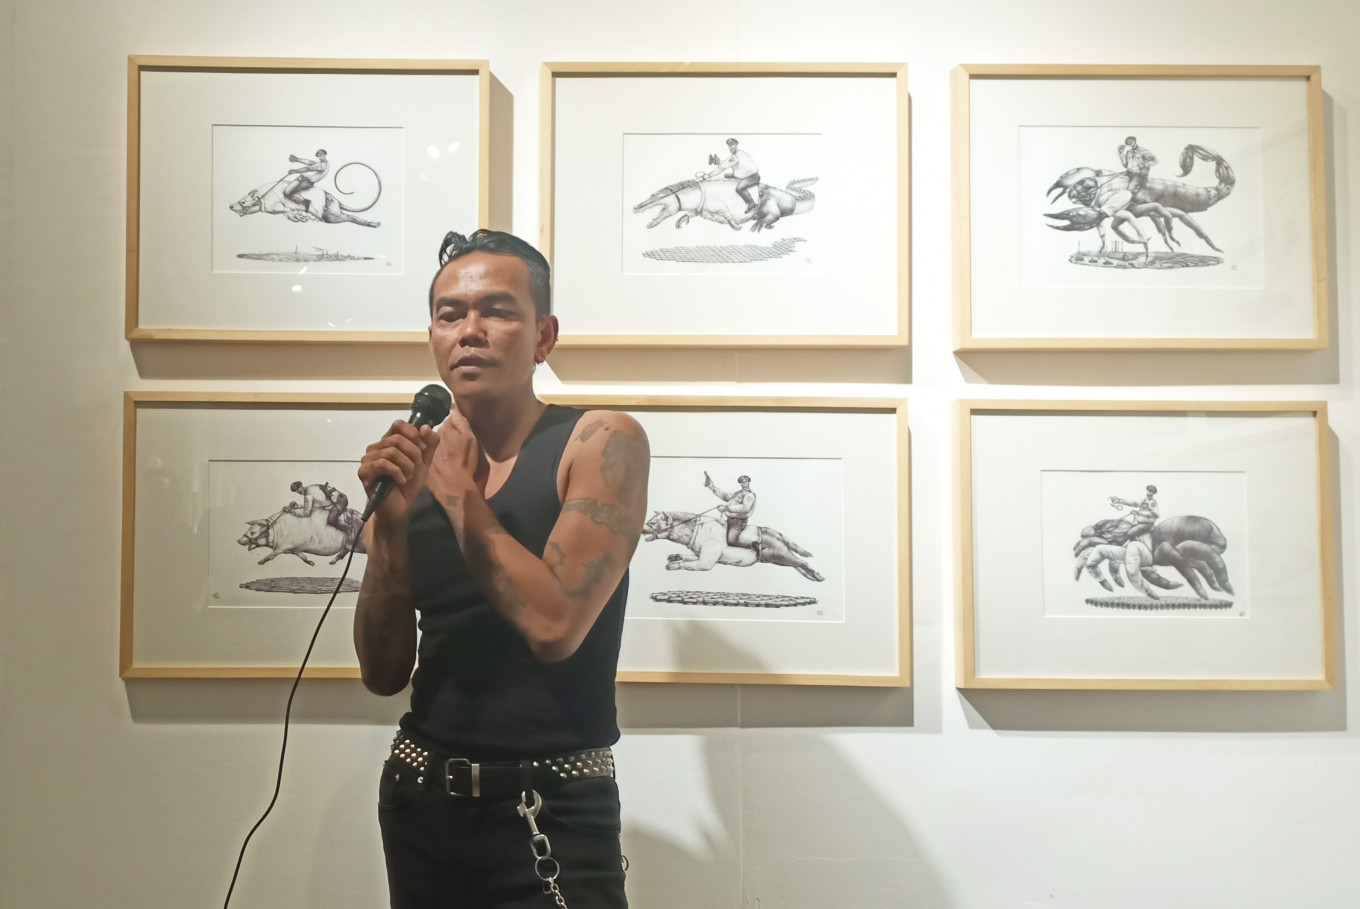 Surakarta-born artist Aris Prabawa speaks during the opening of the 'Hadap Hidup' exhibition at the Jogja National Museum in Yogyakarta, on Jan. 5, 2019.